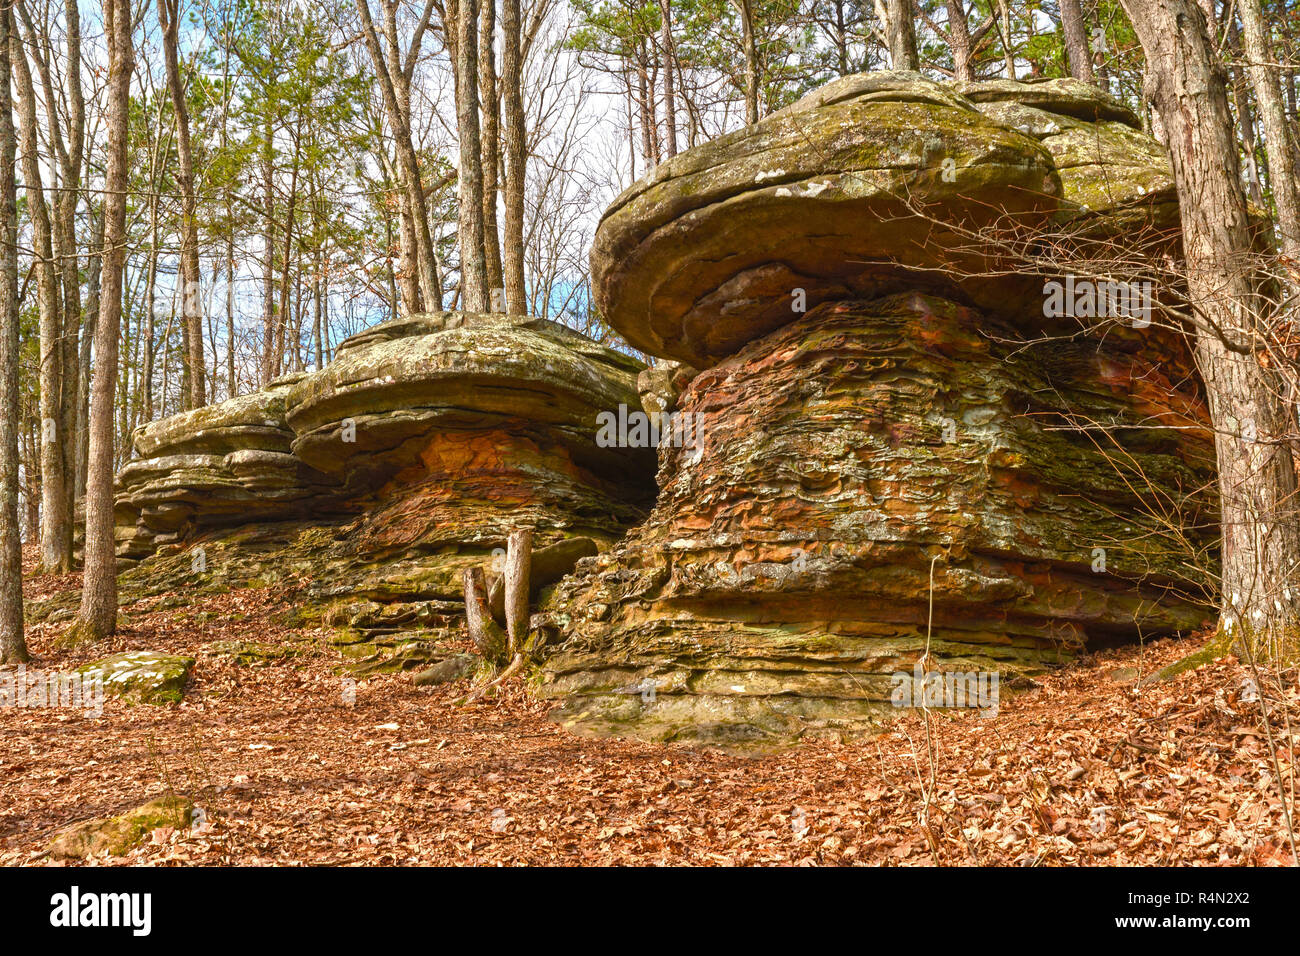 Colorful Rocks in the Forest - Stock Image